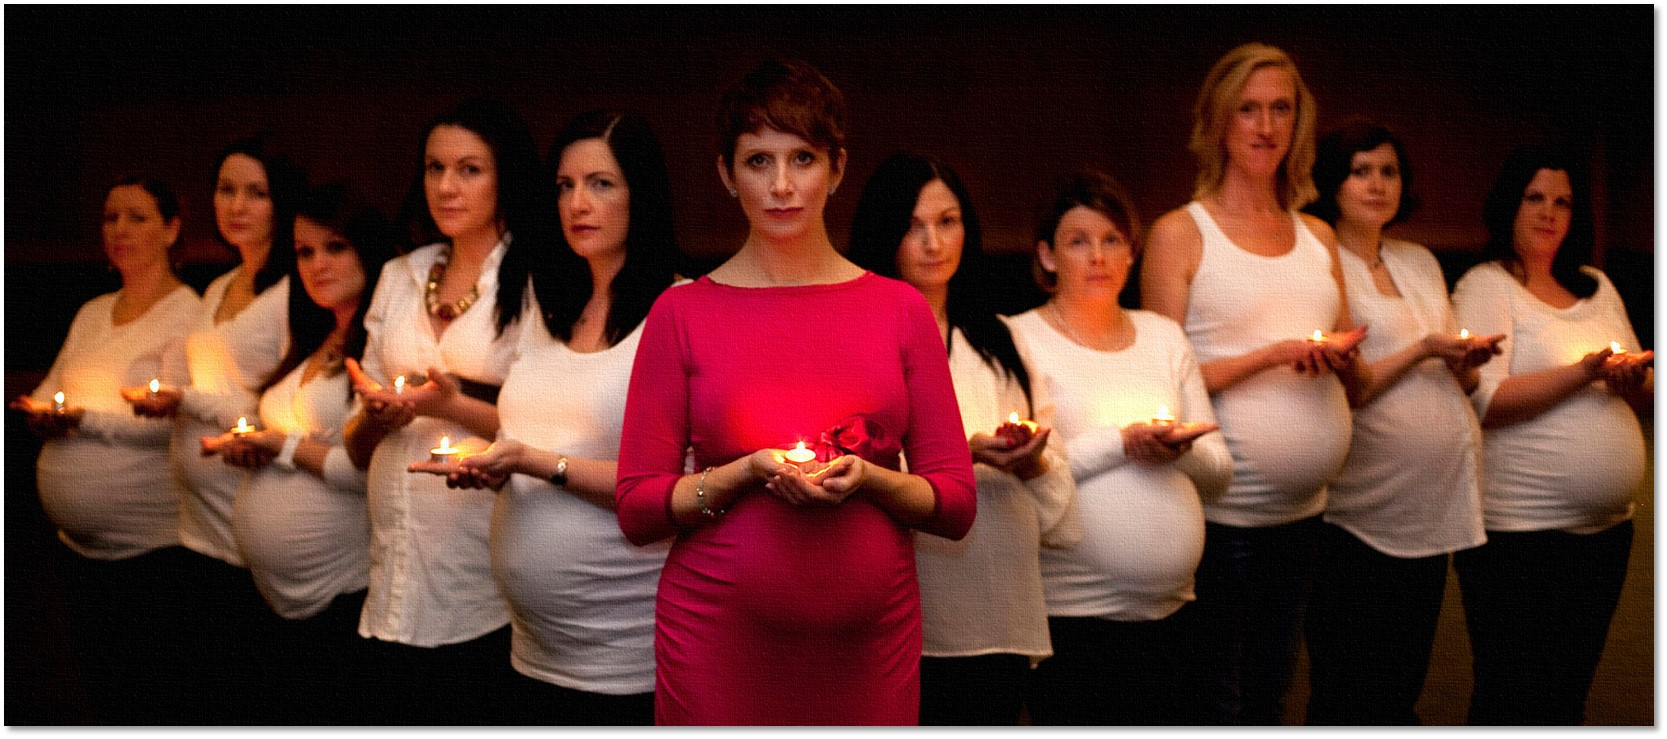 Victims of Abortion